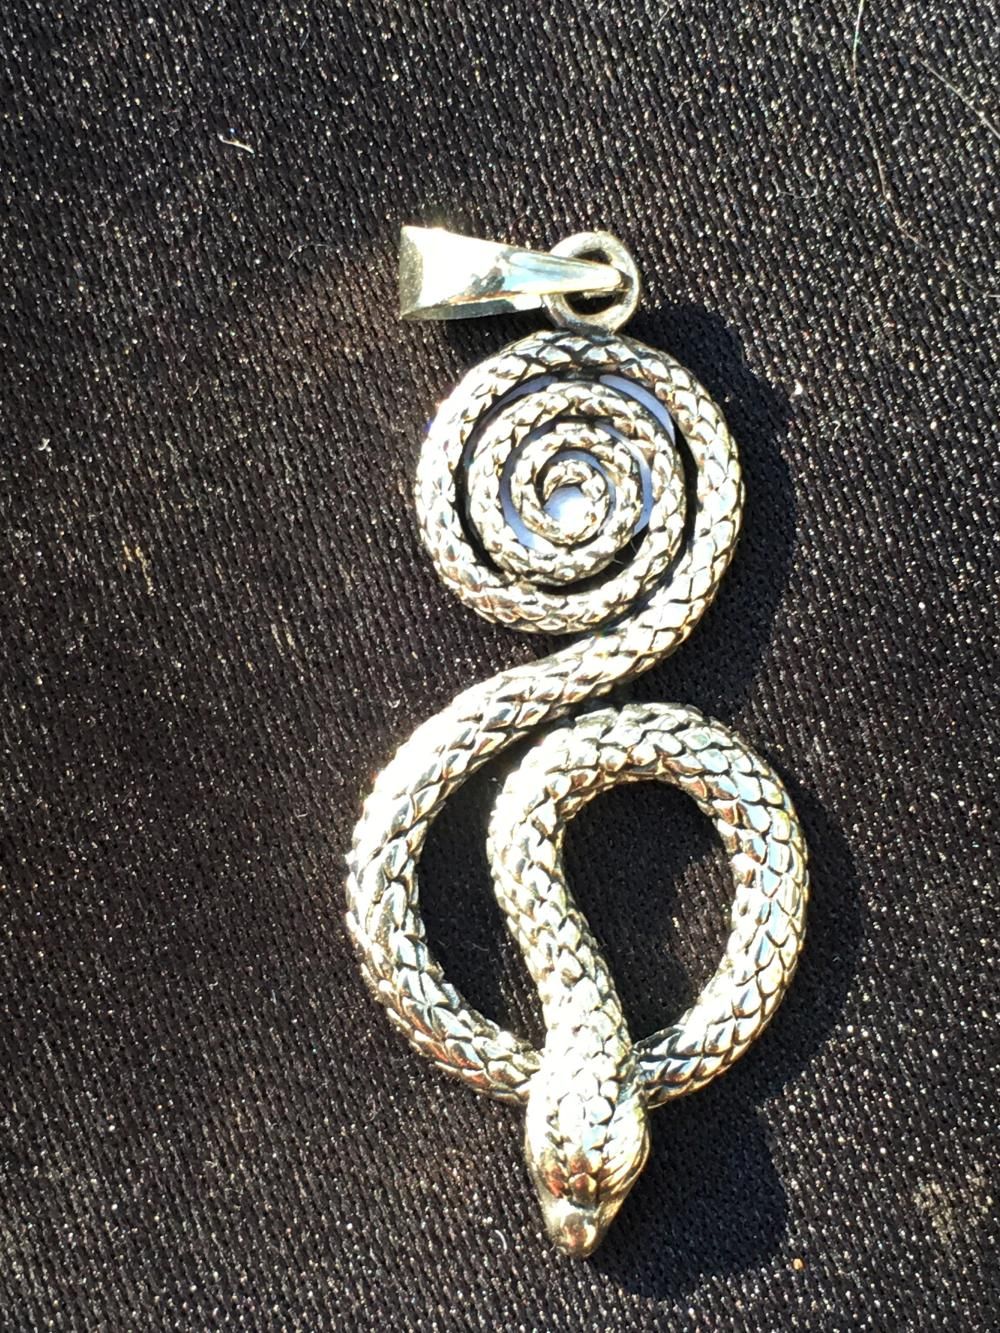 Lot 246: Silver, Jewelry, Charm, Snake